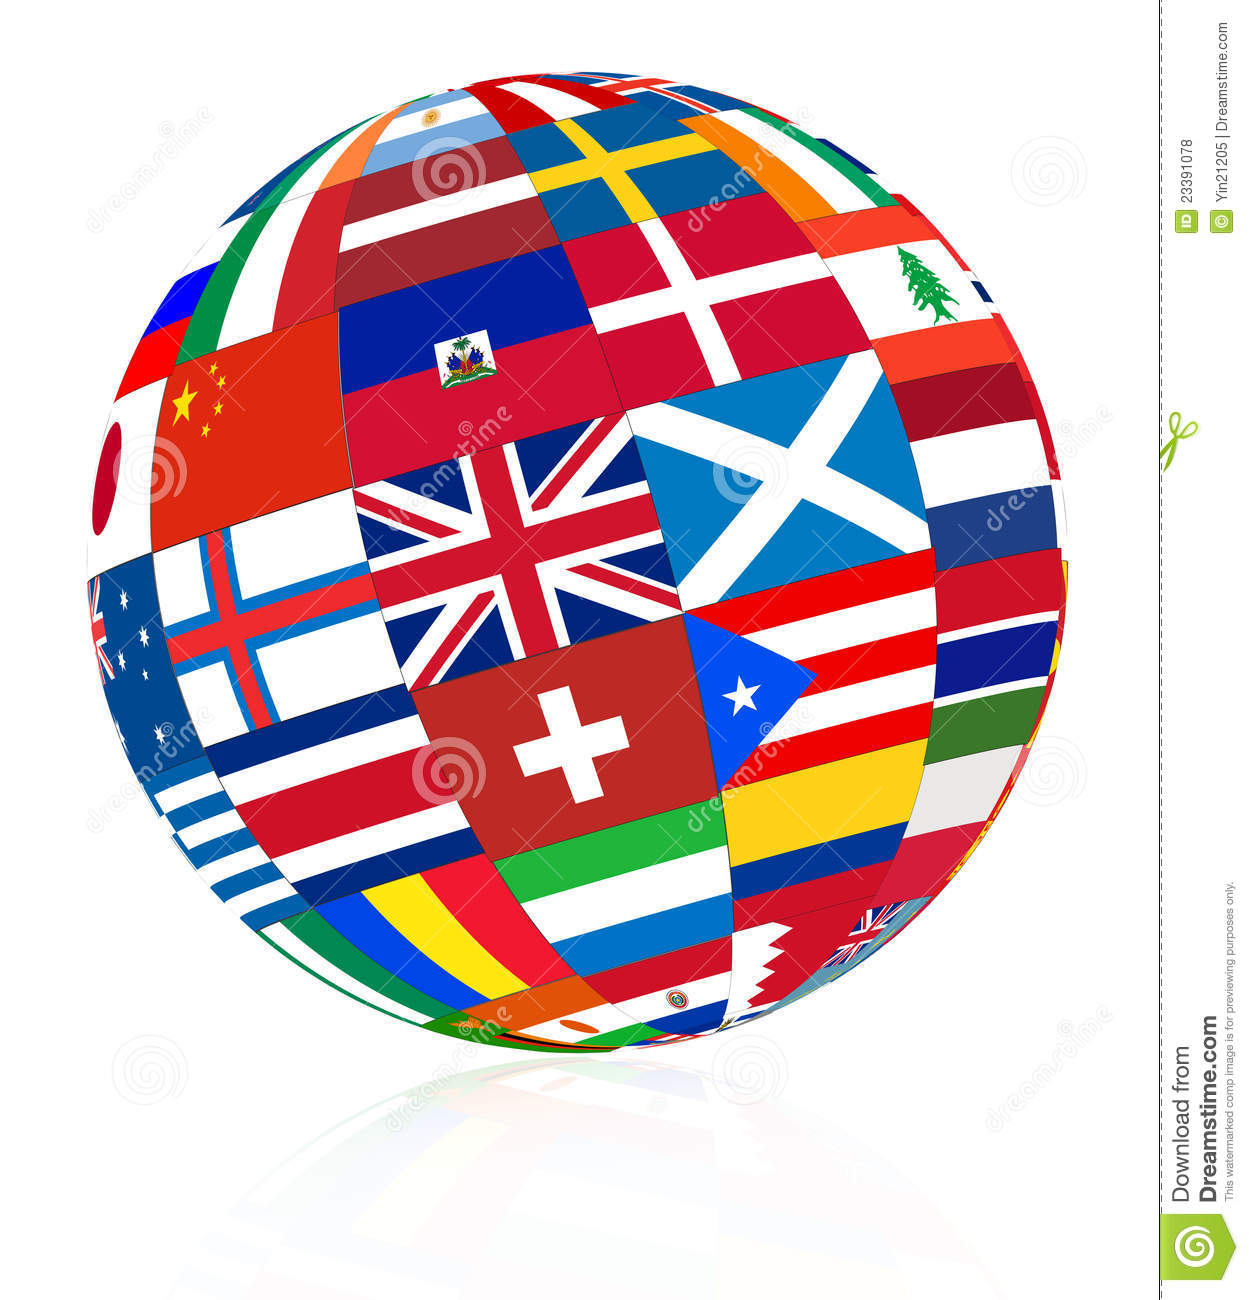 Flag Globe Royalty Free Stock Photos Image: 23391078